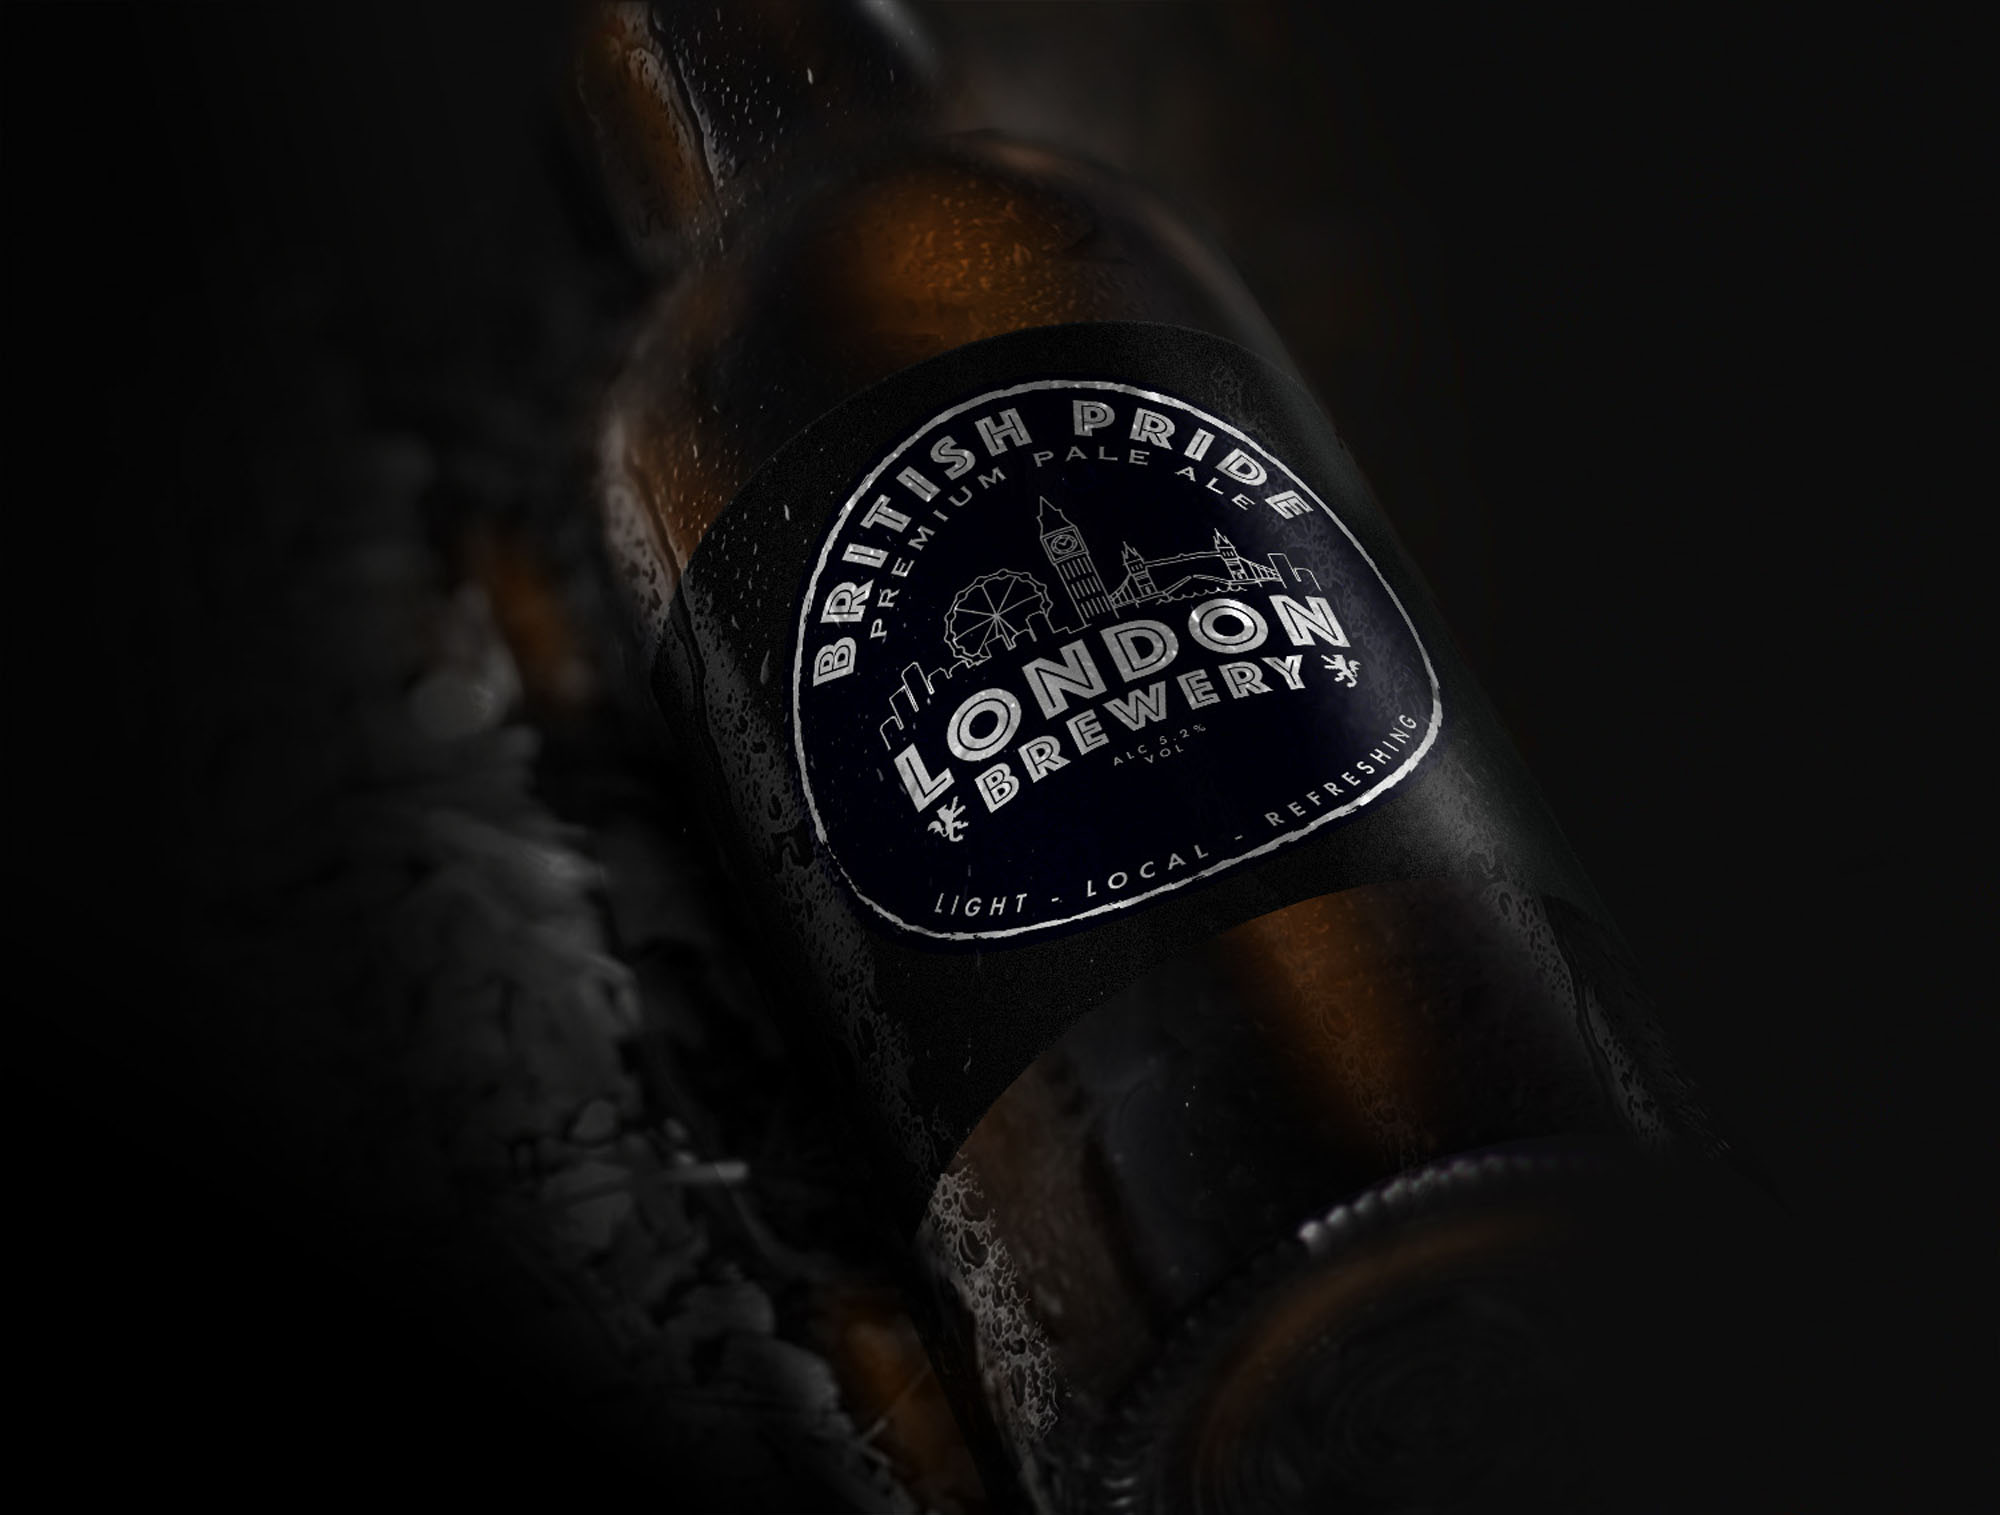 London Brewery Packaging Design Project